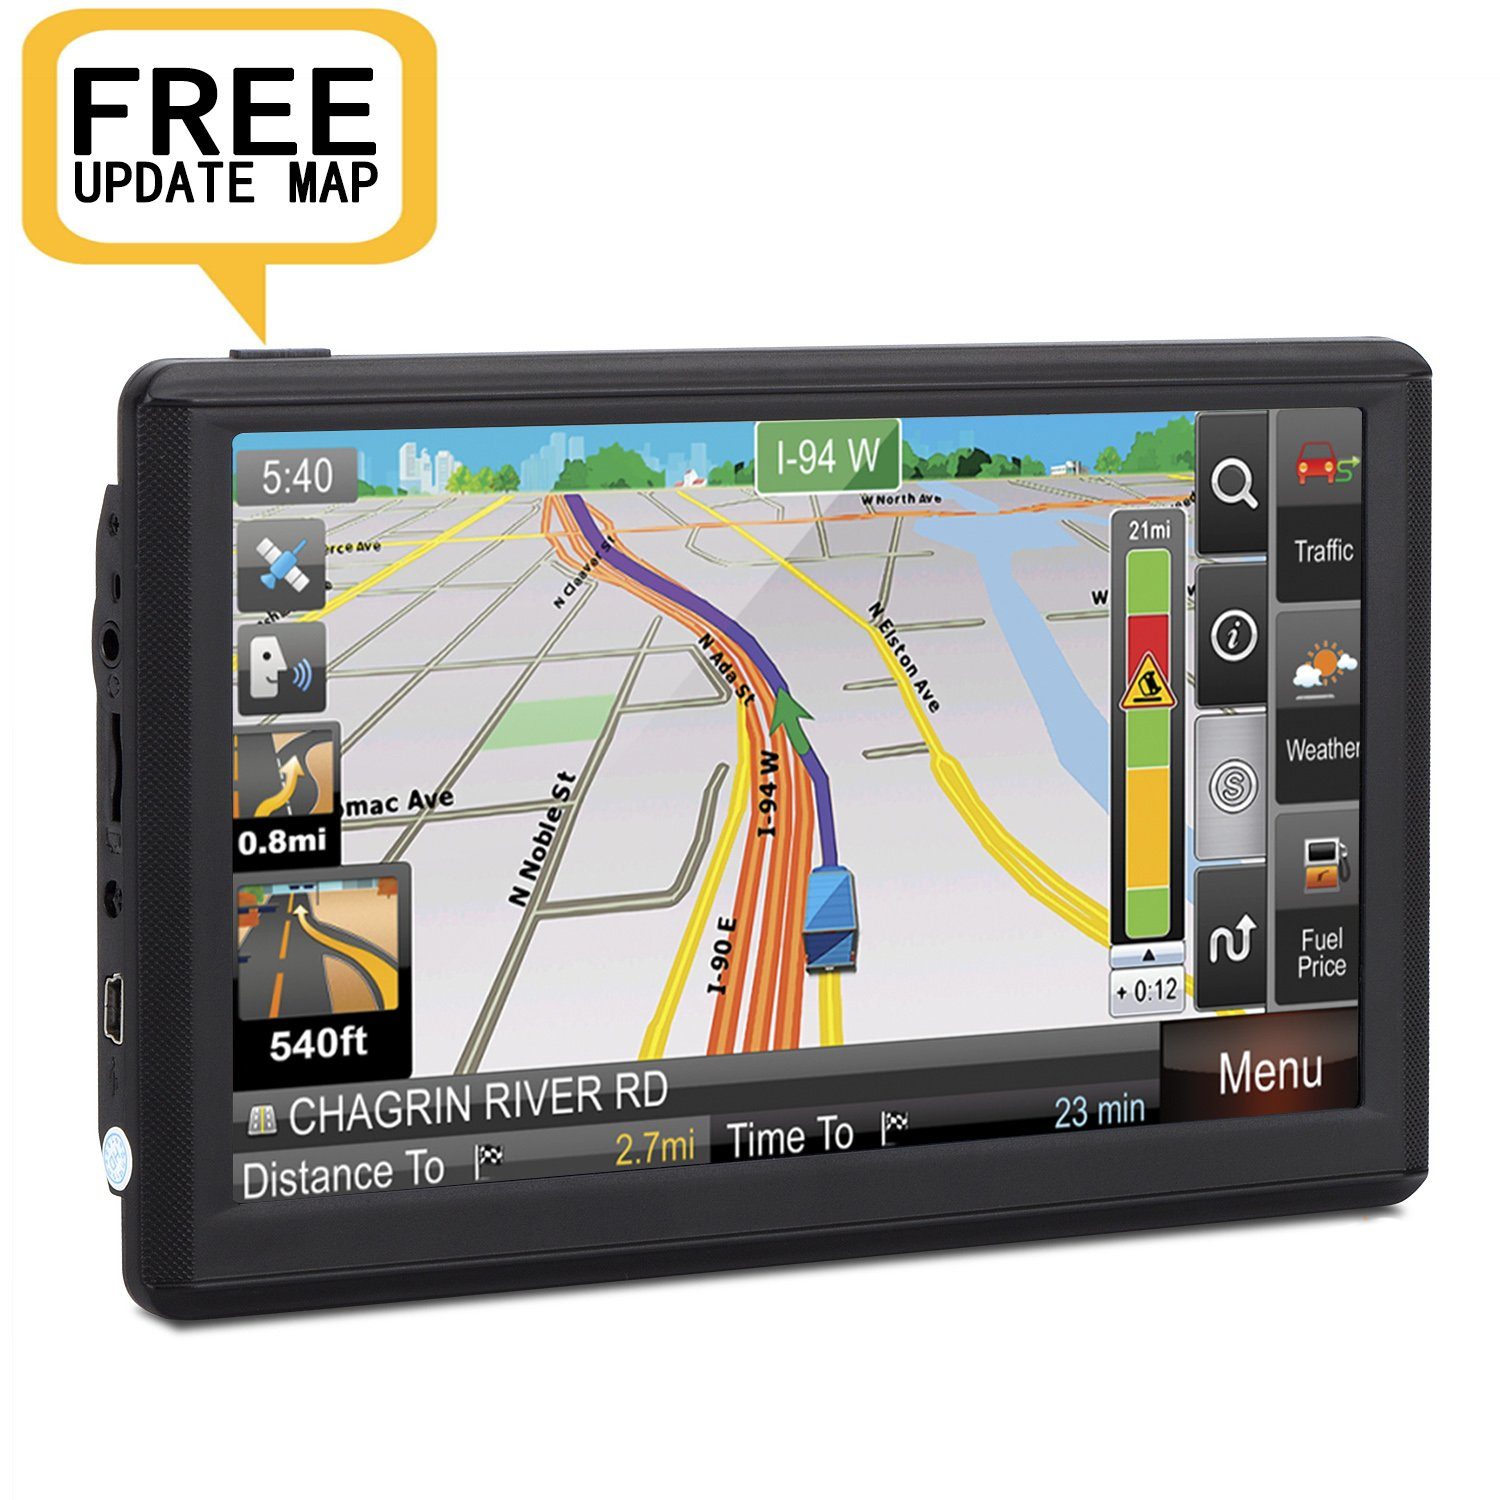 Car GPS Navigation, 7 inch Portable GPS Navigator Electronic Touchscreen Voice Turn-by-Turn Instruction, Sat-Nav DDR128M 8GB Latest Maps Free Lifetime Map Update